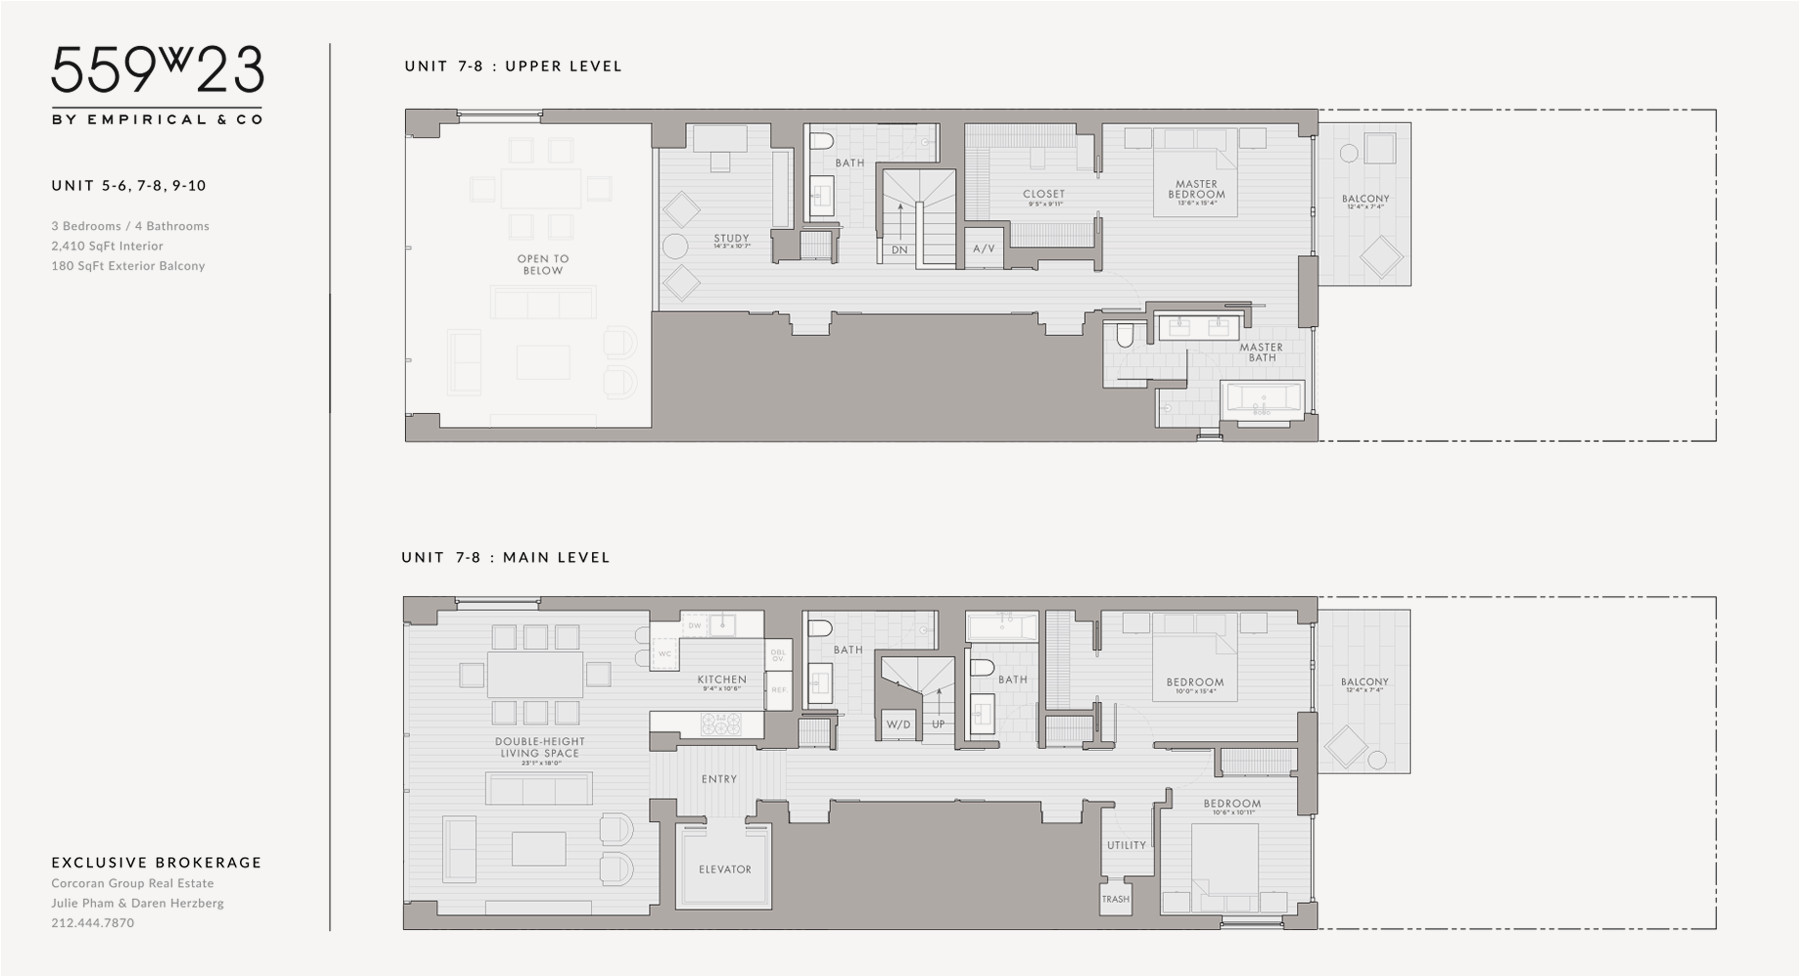 floor plans elevations bringing graphic clarity to complex 14